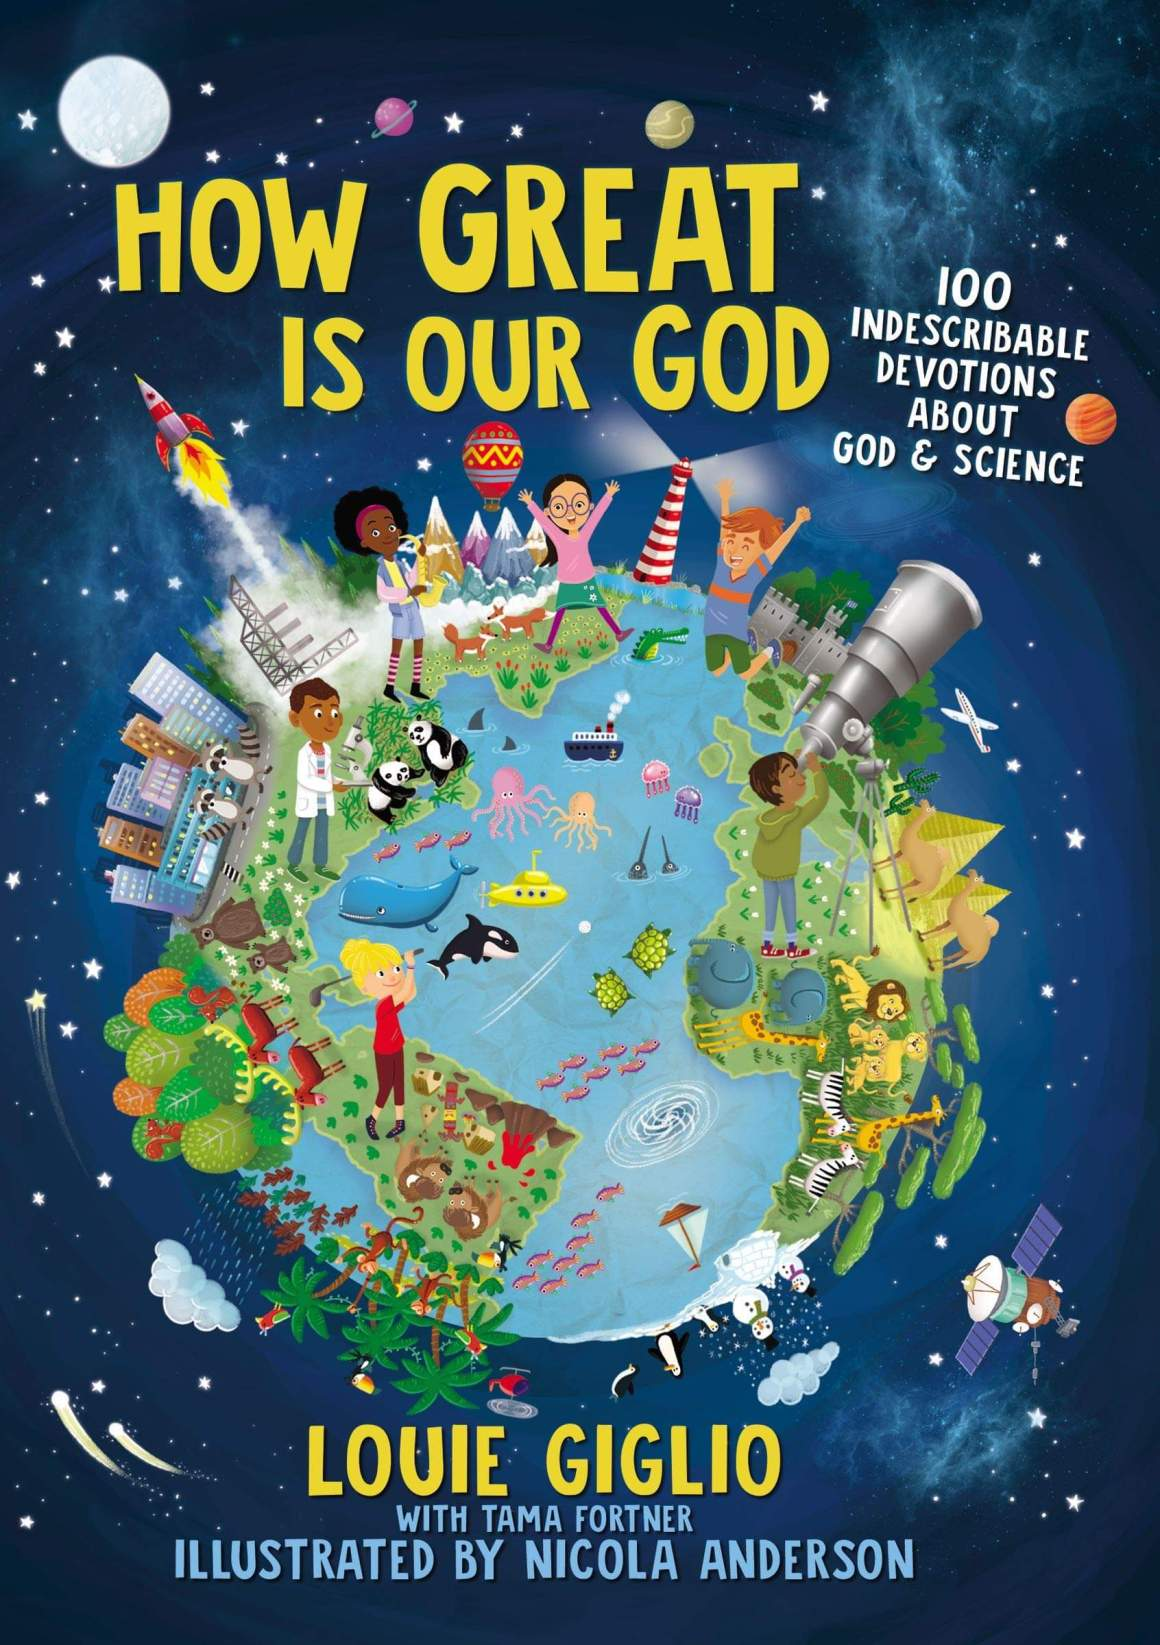 How Great is our God 100 devotions for kids